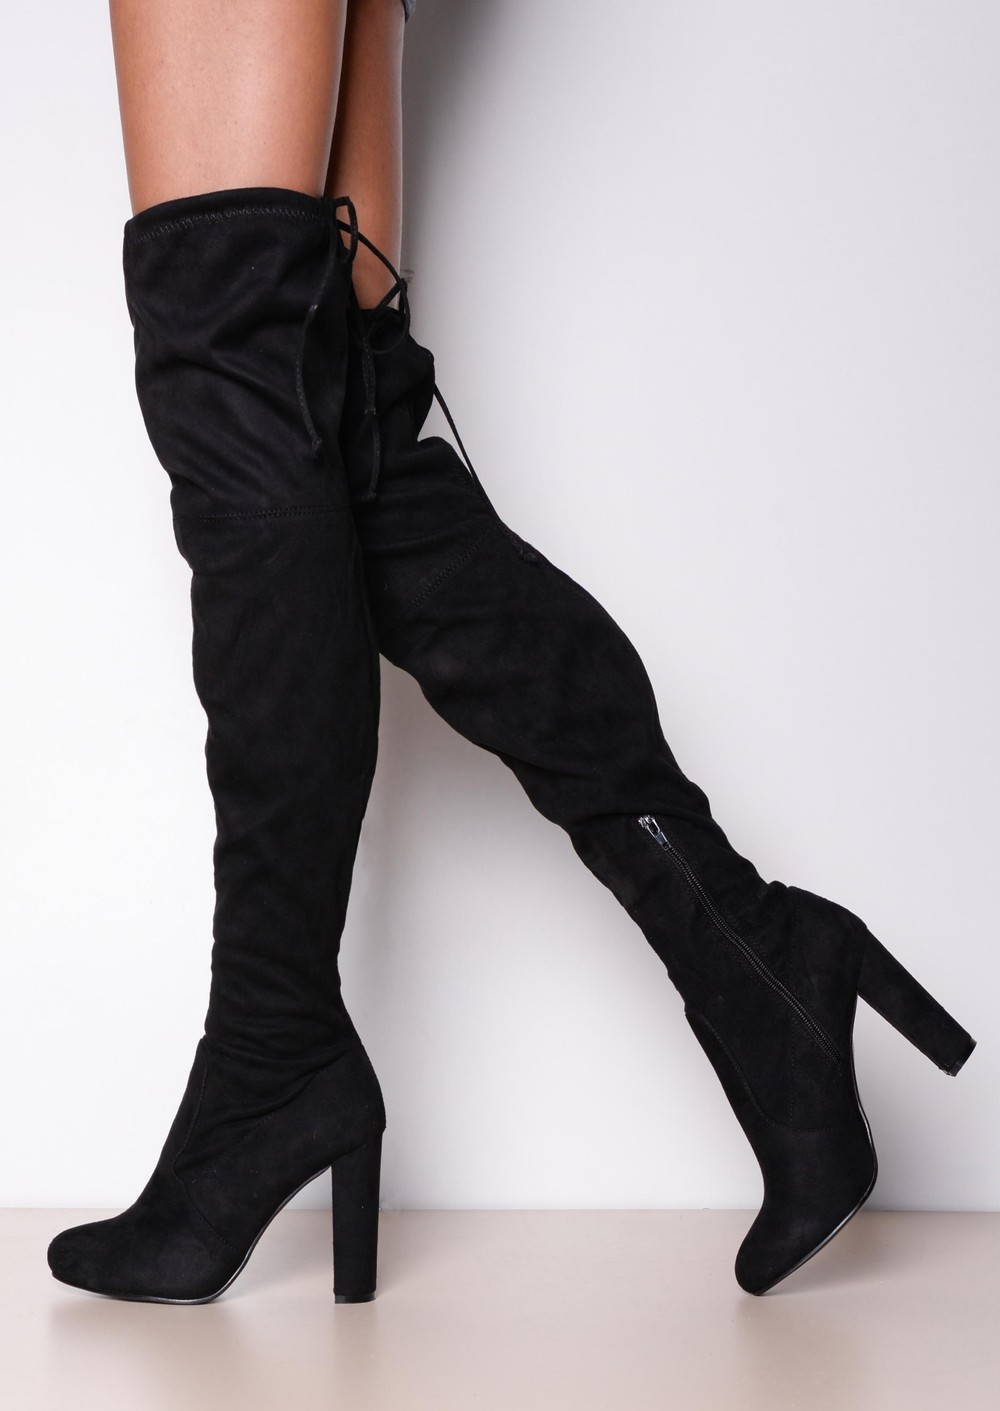 black suede thigh high heel boots boot 2017